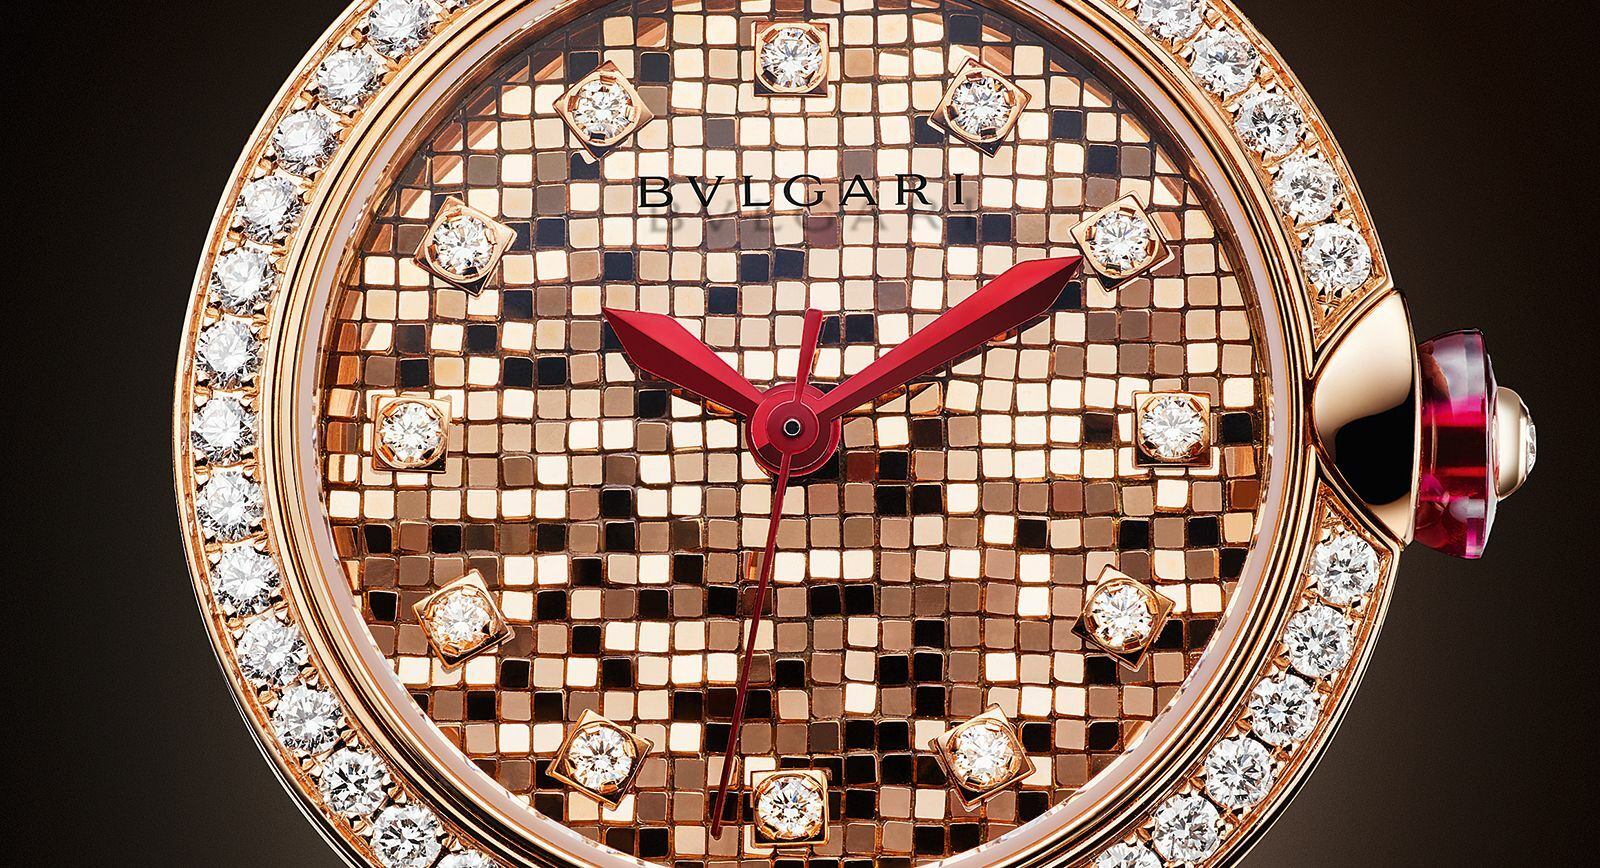 Lvcea Mosaique: Bvlgari added new creative model to its Lvcea watch line